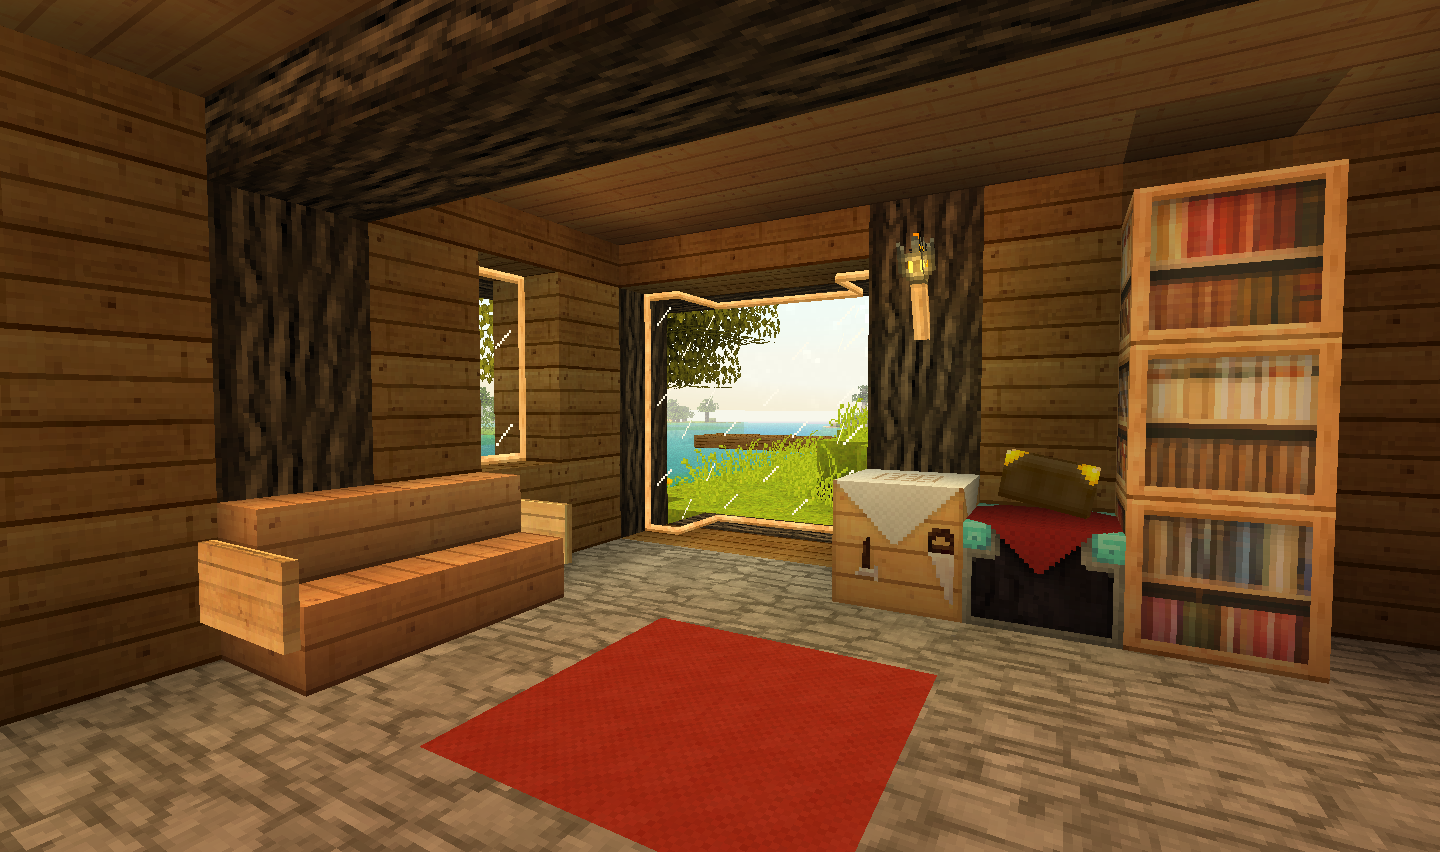 33569  Willpack HD Texture Pack 2 [1.4.7/1.4.6] [32x] Willpack HD Texture Pack Download